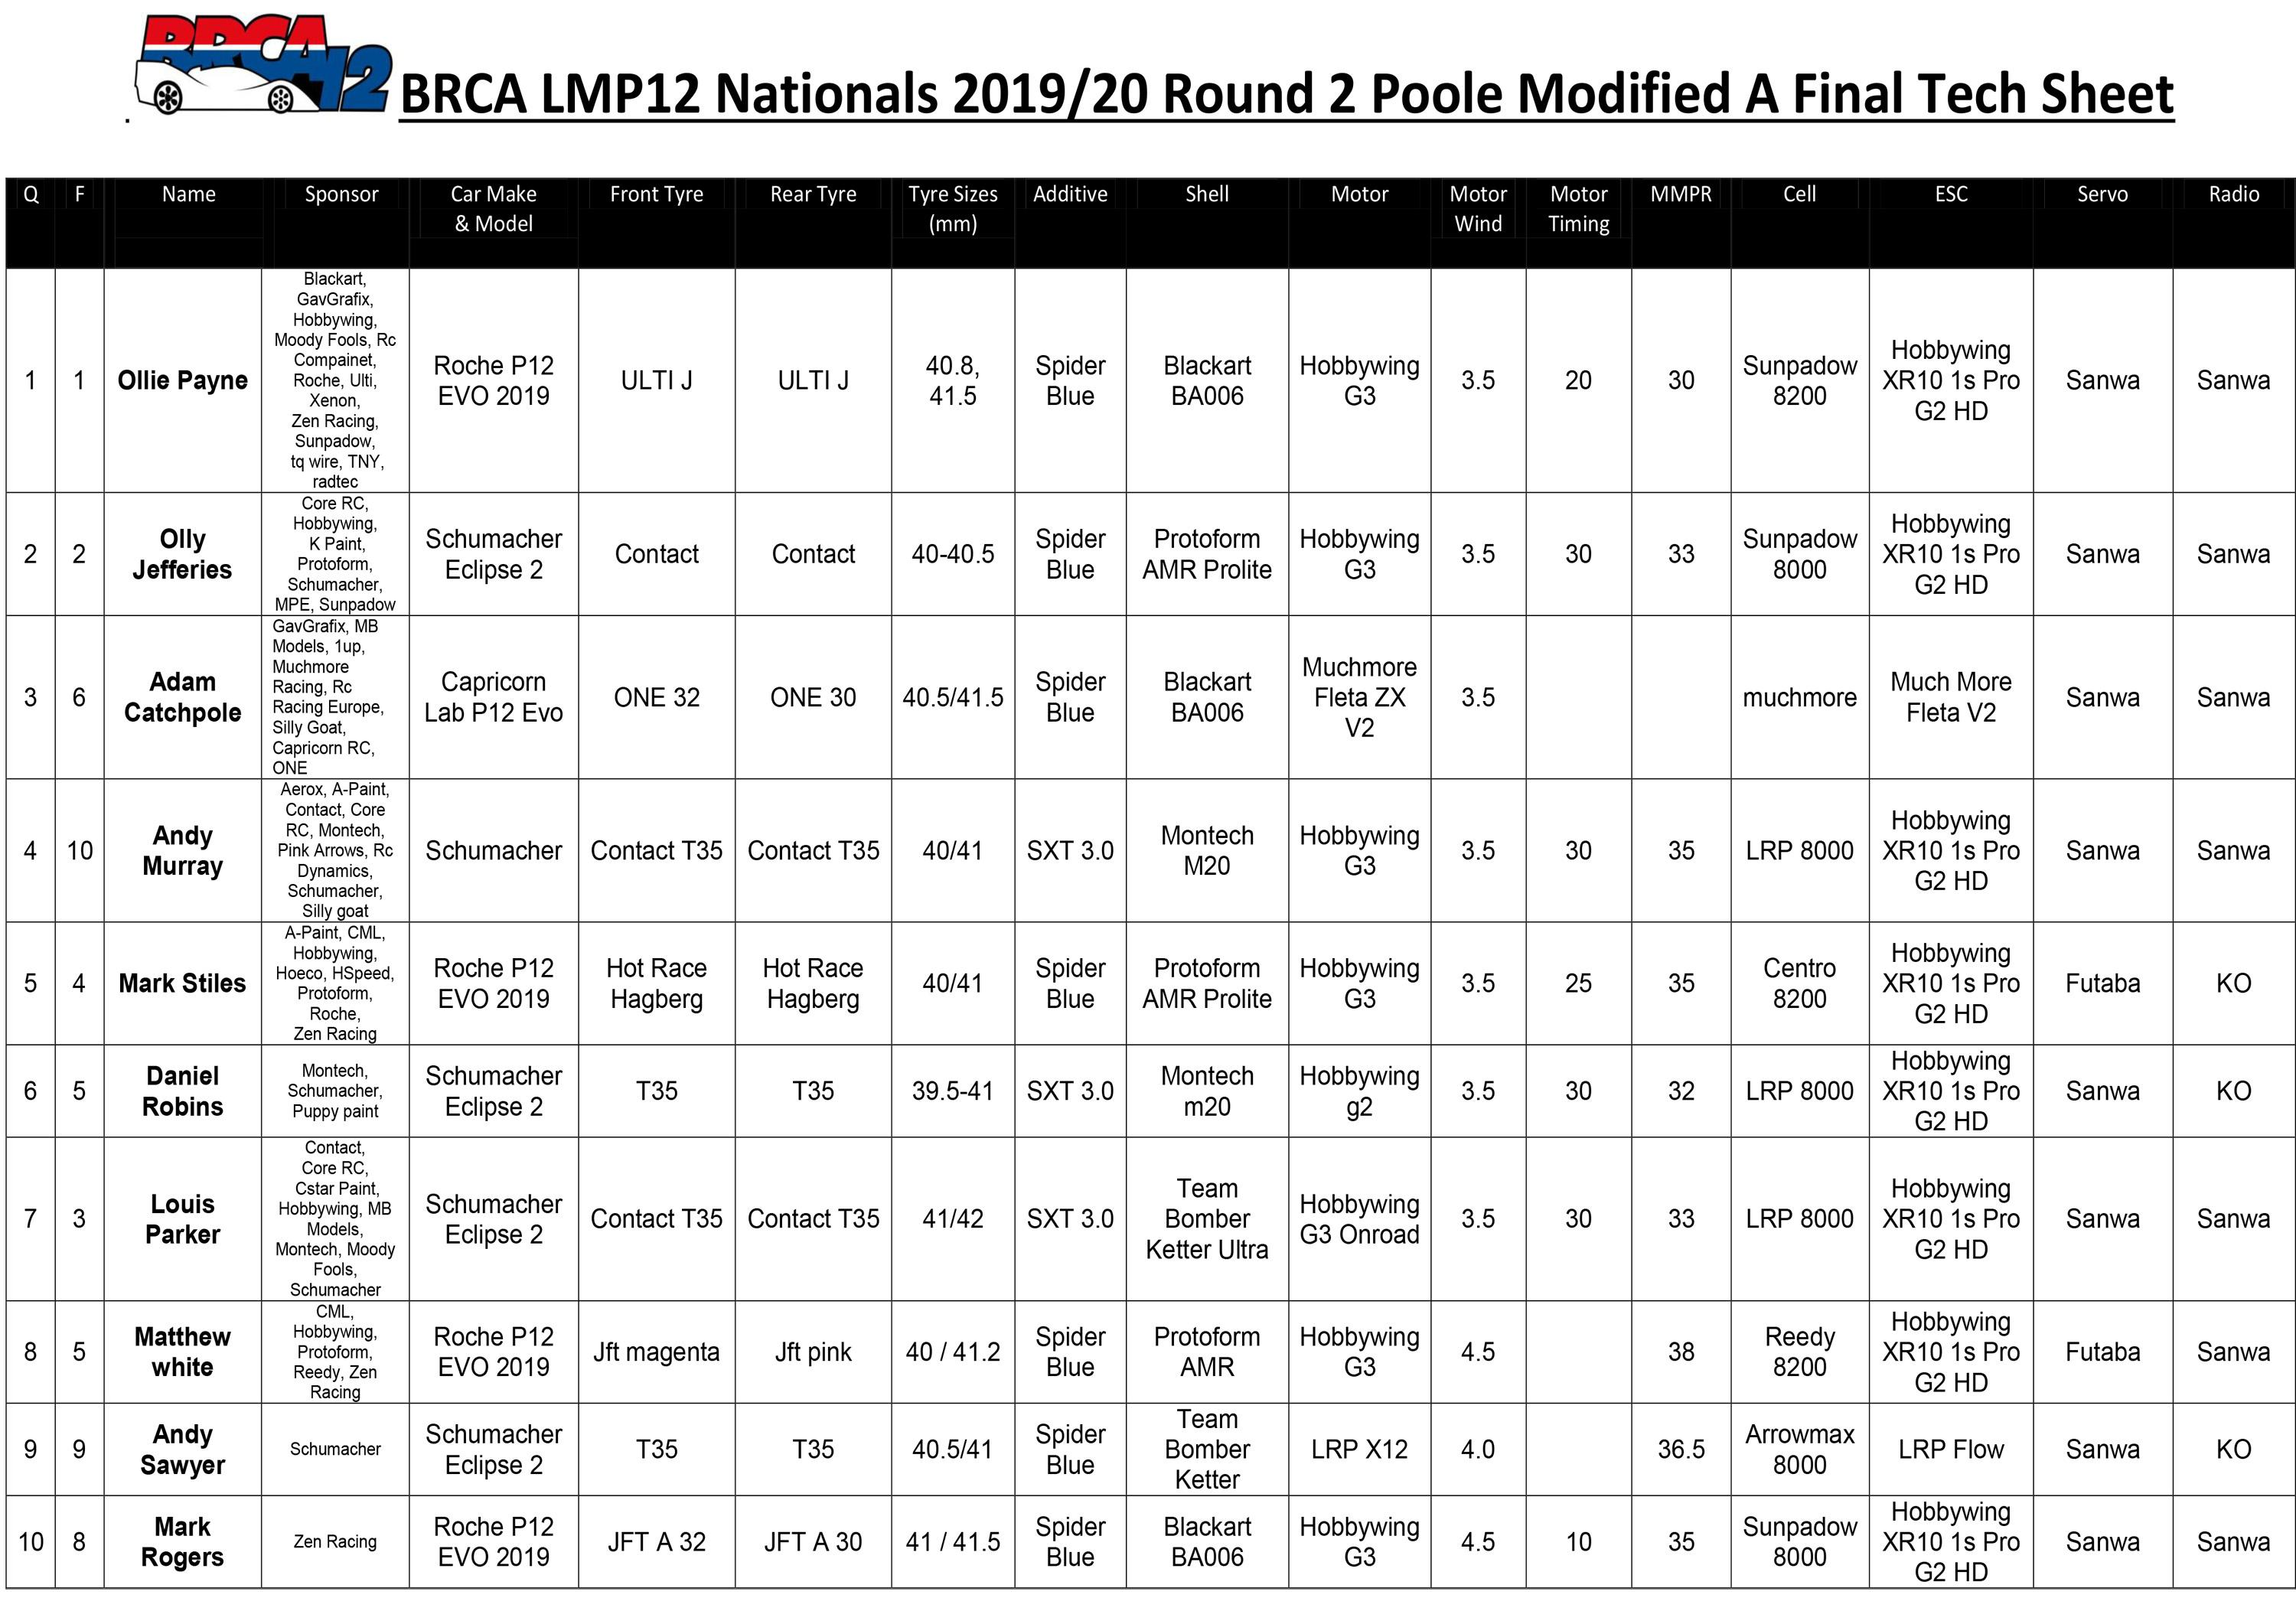 Poole Modified Tech Sheet